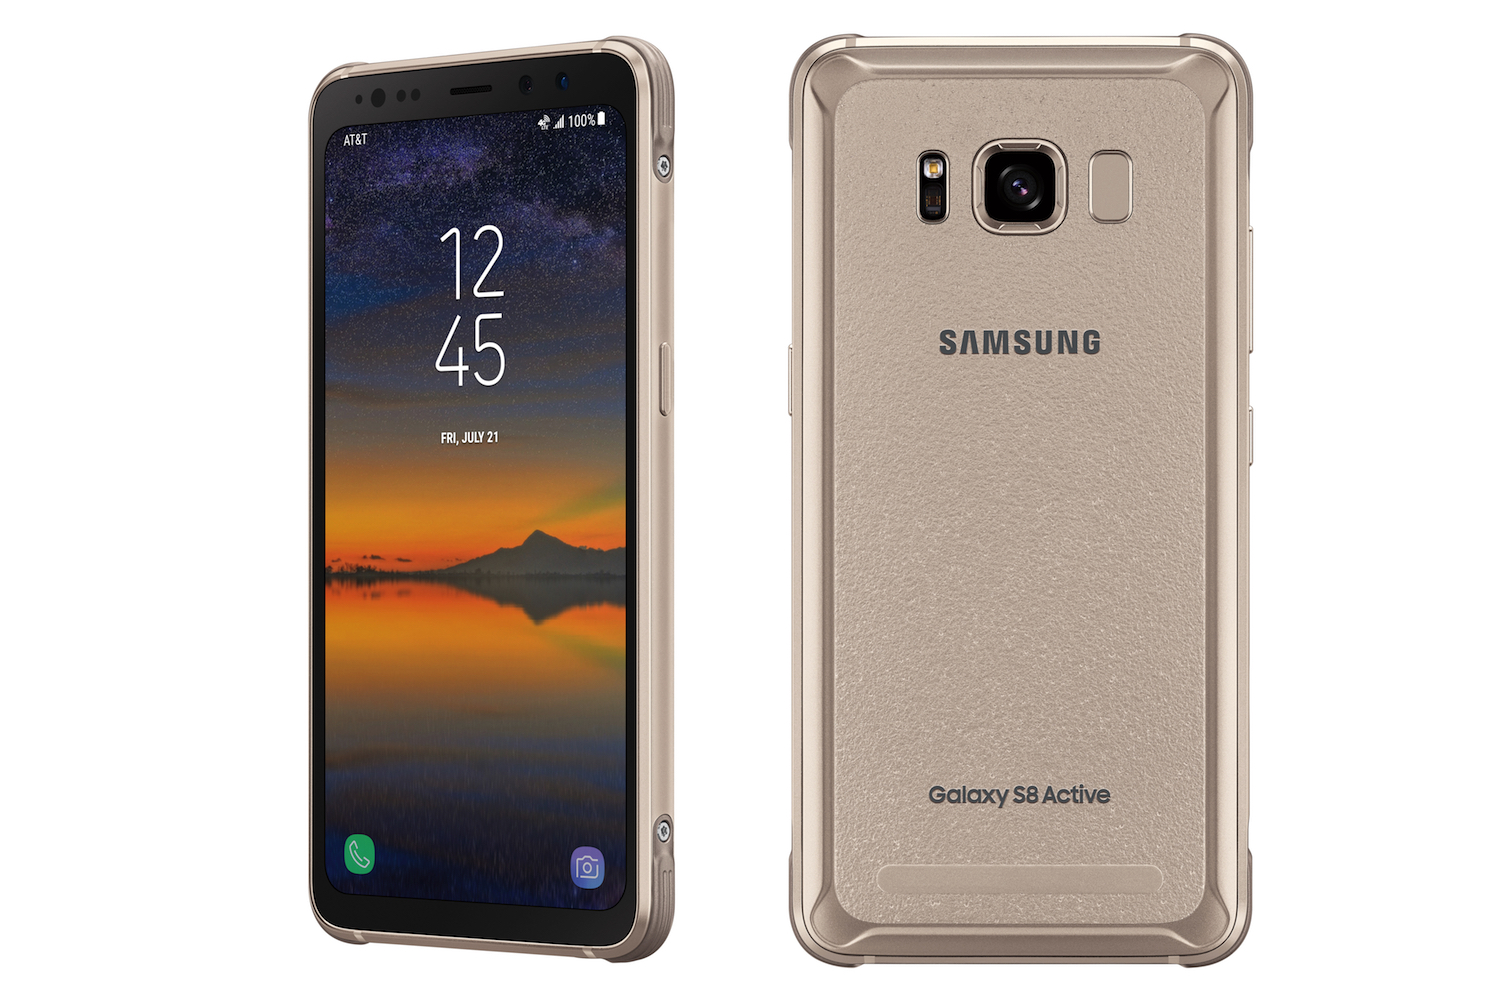 samsung galaxy s8 active vs galaxy s7 active rugged. Black Bedroom Furniture Sets. Home Design Ideas